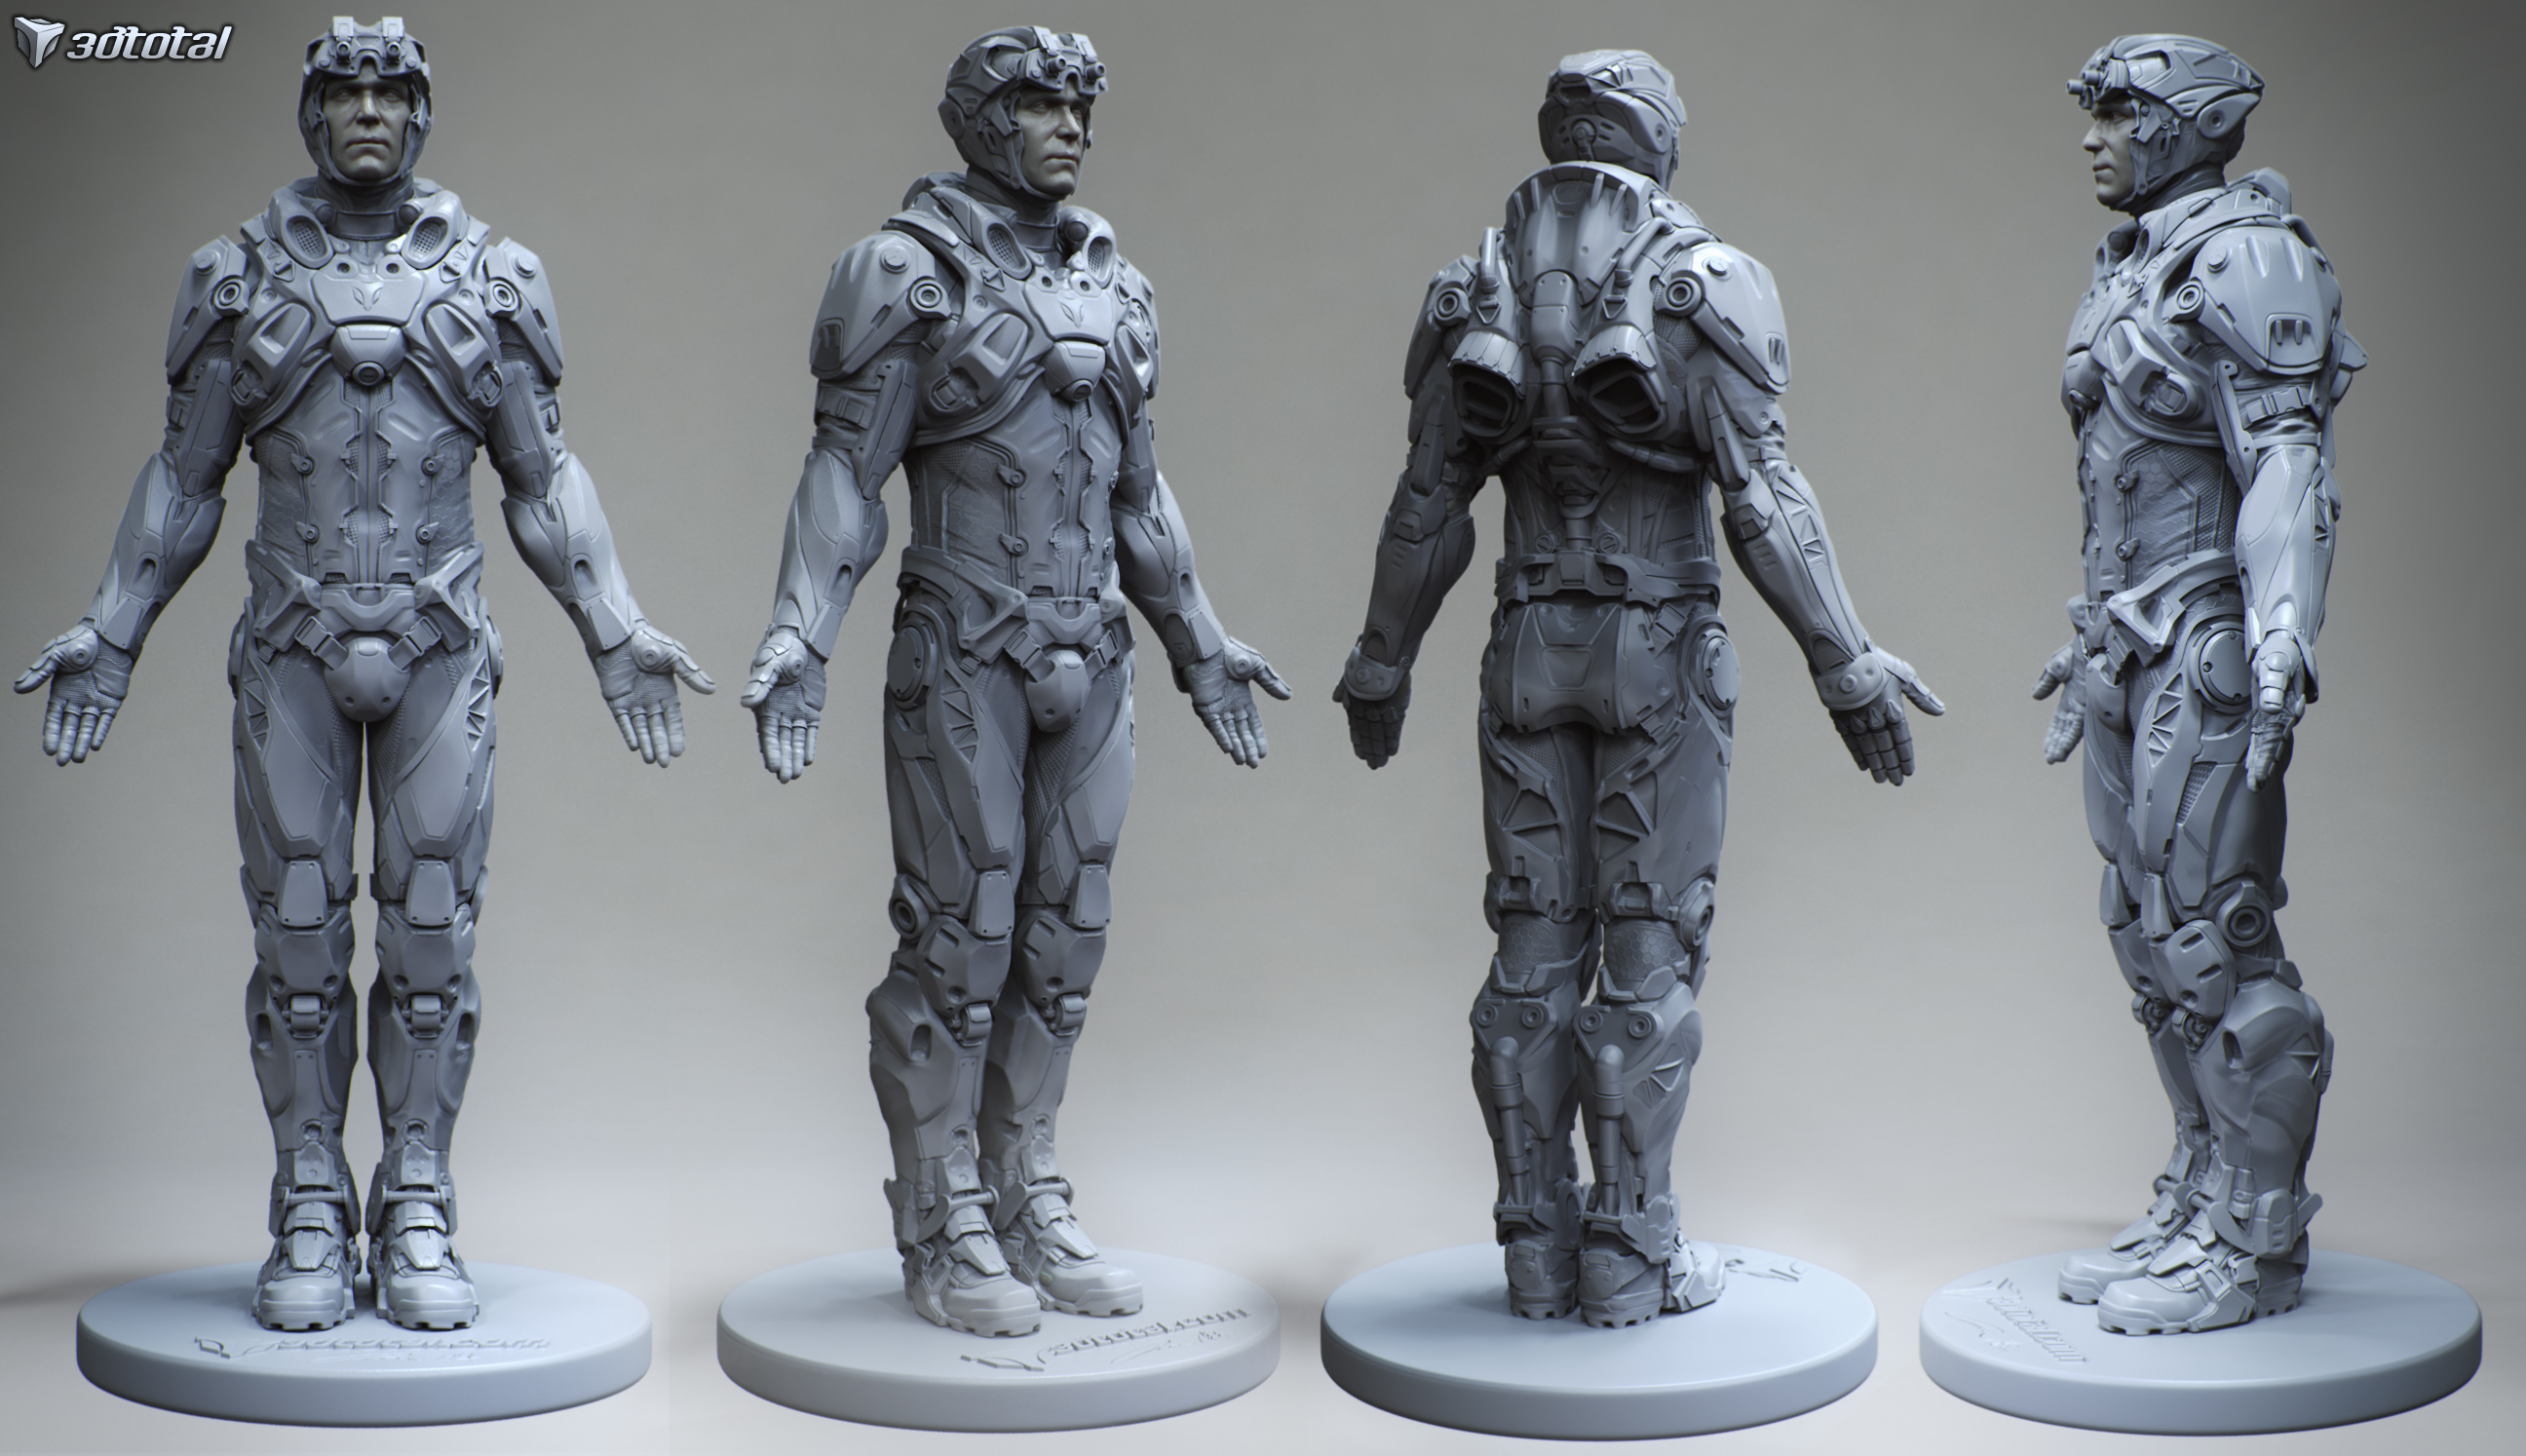 Maquette Done For 3d Total As Part Of Anatomical Reference Statue